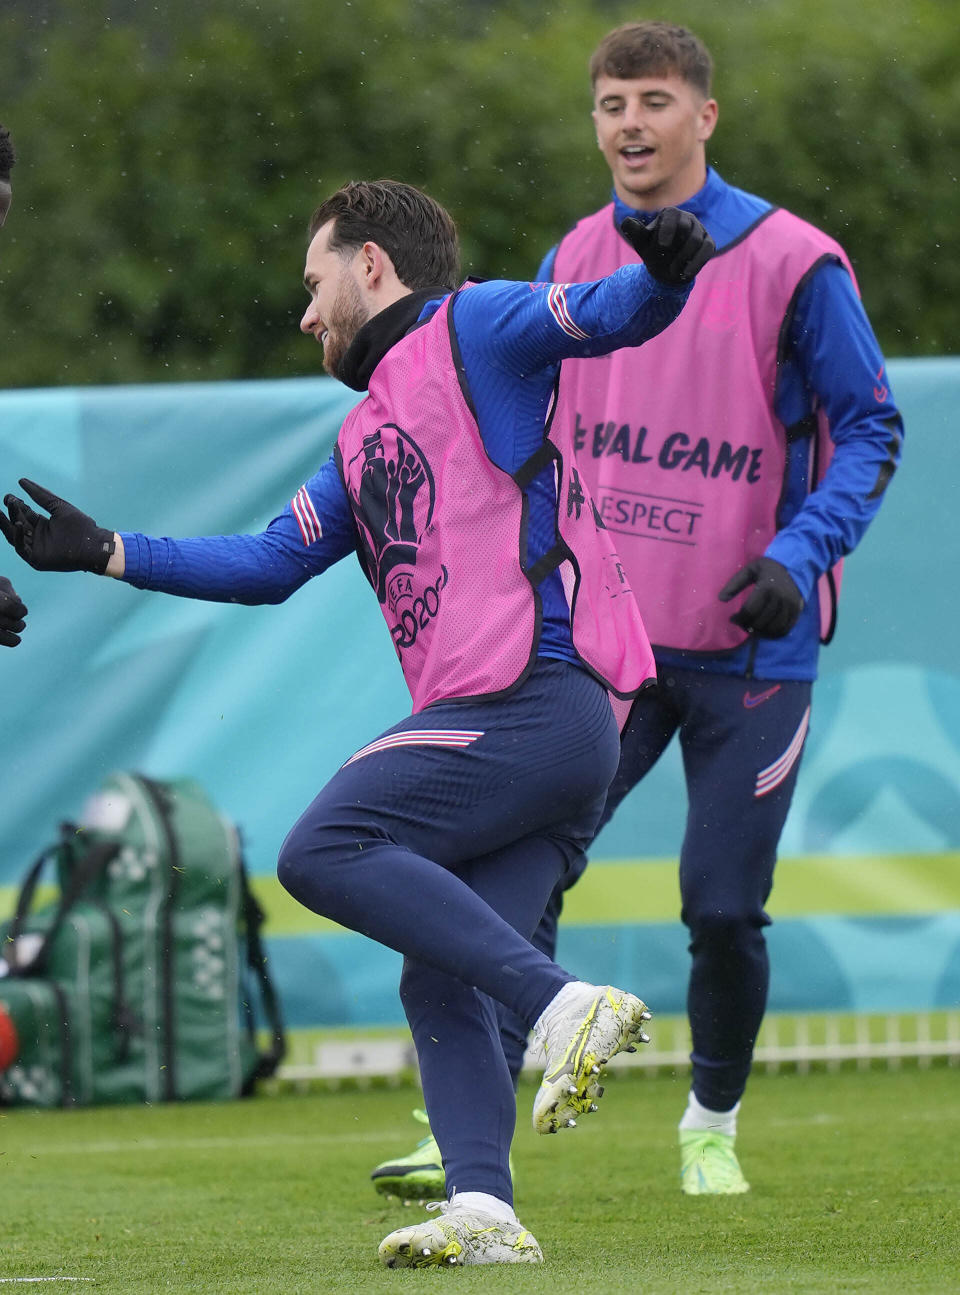 """England's Mason Mount, right, and England's Ben Chilwell, left, during a team training session at Tottenham Hotspur training ground in London, Monday, June 21, 2021 one day ahead of the Euro 2020 soccer championship group D match against Czech Republic. After a positive test for Scotland midfielder Billy Gilmour, Mason Mount and Ben Chilwell have been told to self isolate following """"interaction"""" with Gilmour during England's 0-0 draw with Scotland at Wembley Stadium on Friday. (AP Photo/Frank Augstein)"""